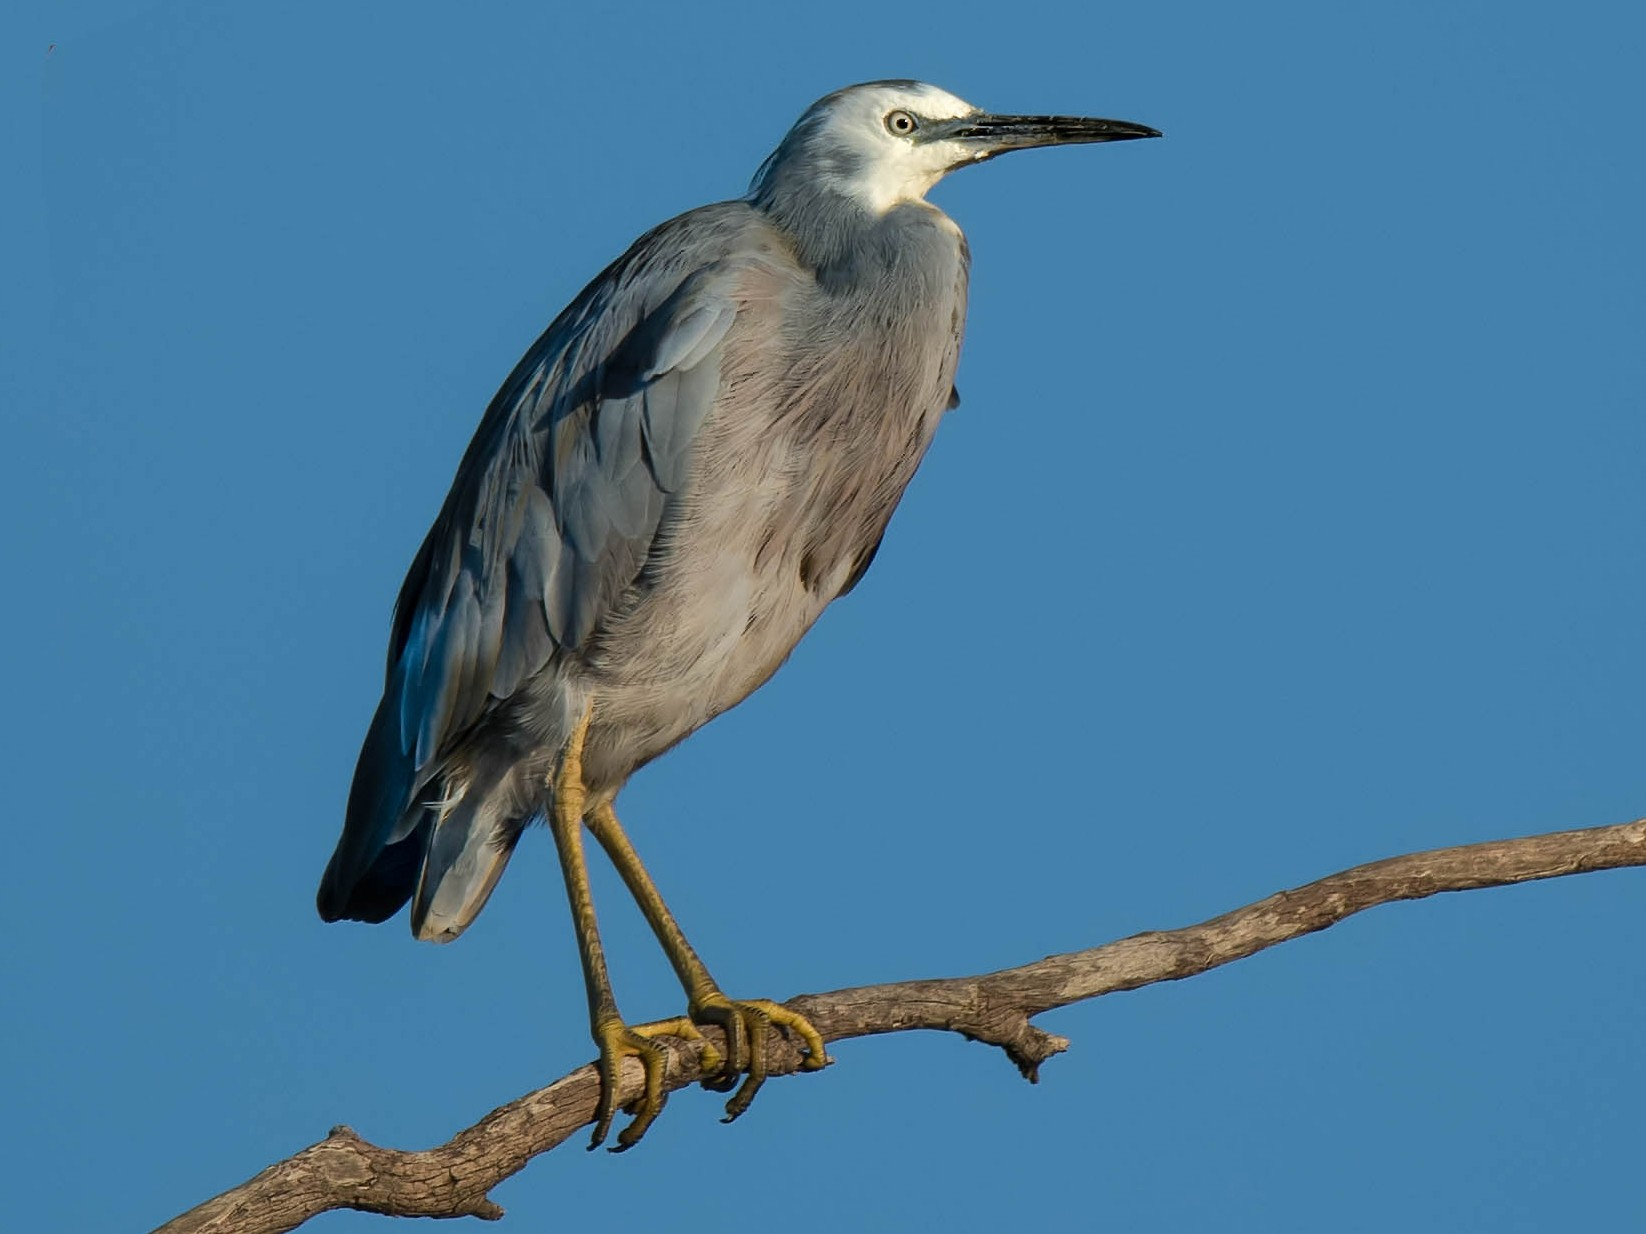 White-faced Heron - Hayley Alexander